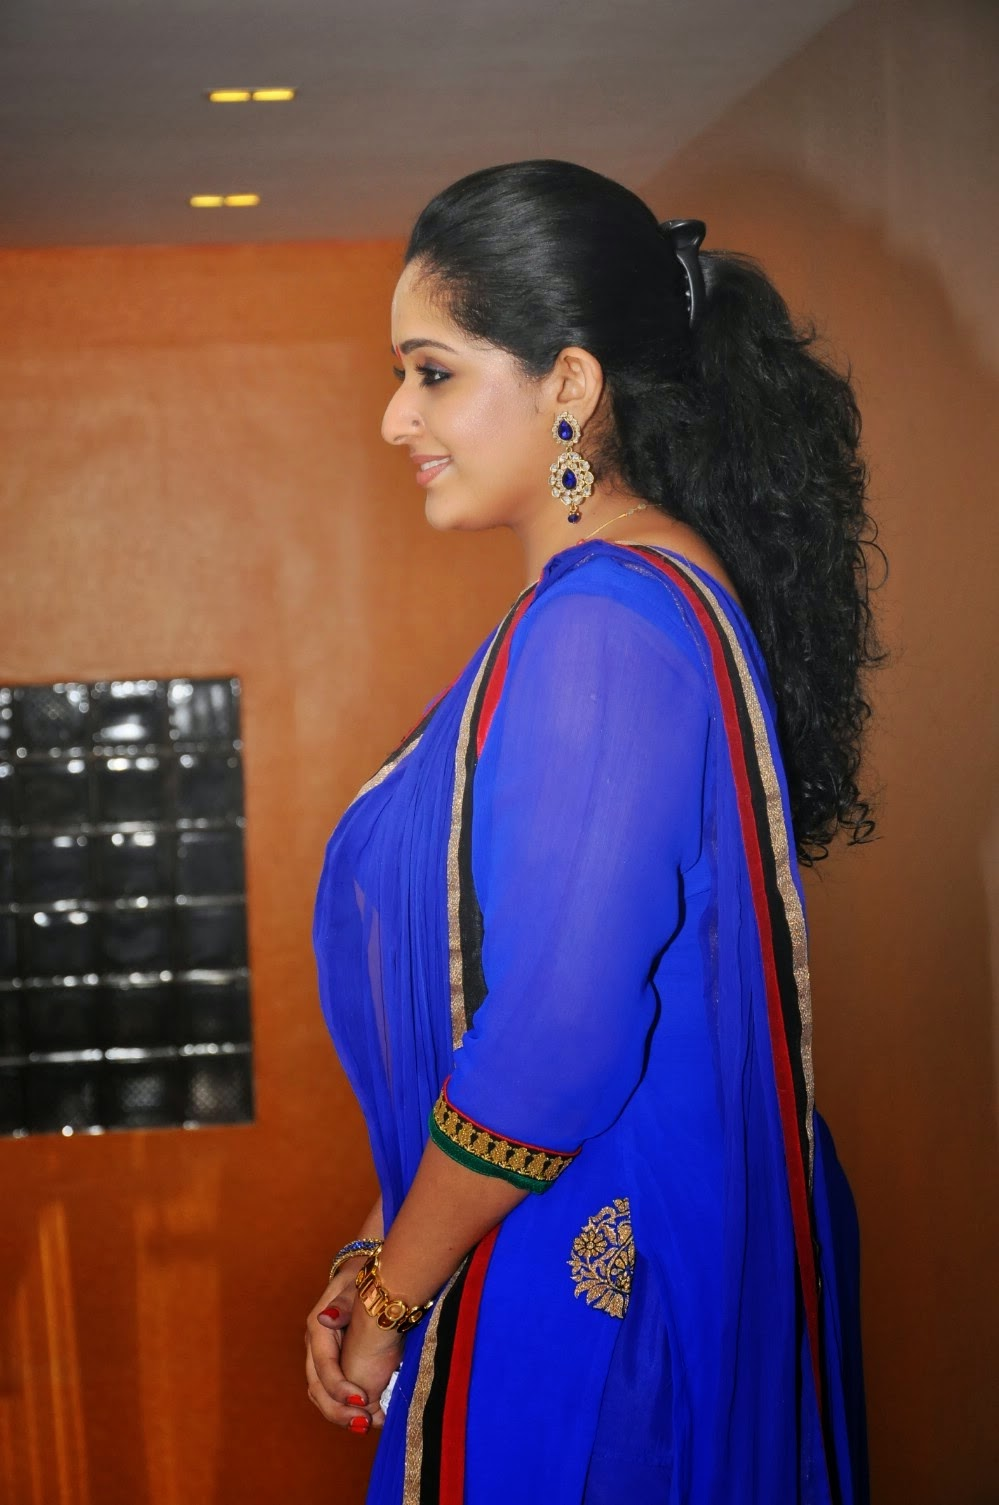 kavya madhavan bathroom 28 images www hot actress With kavya madhavan bathroom